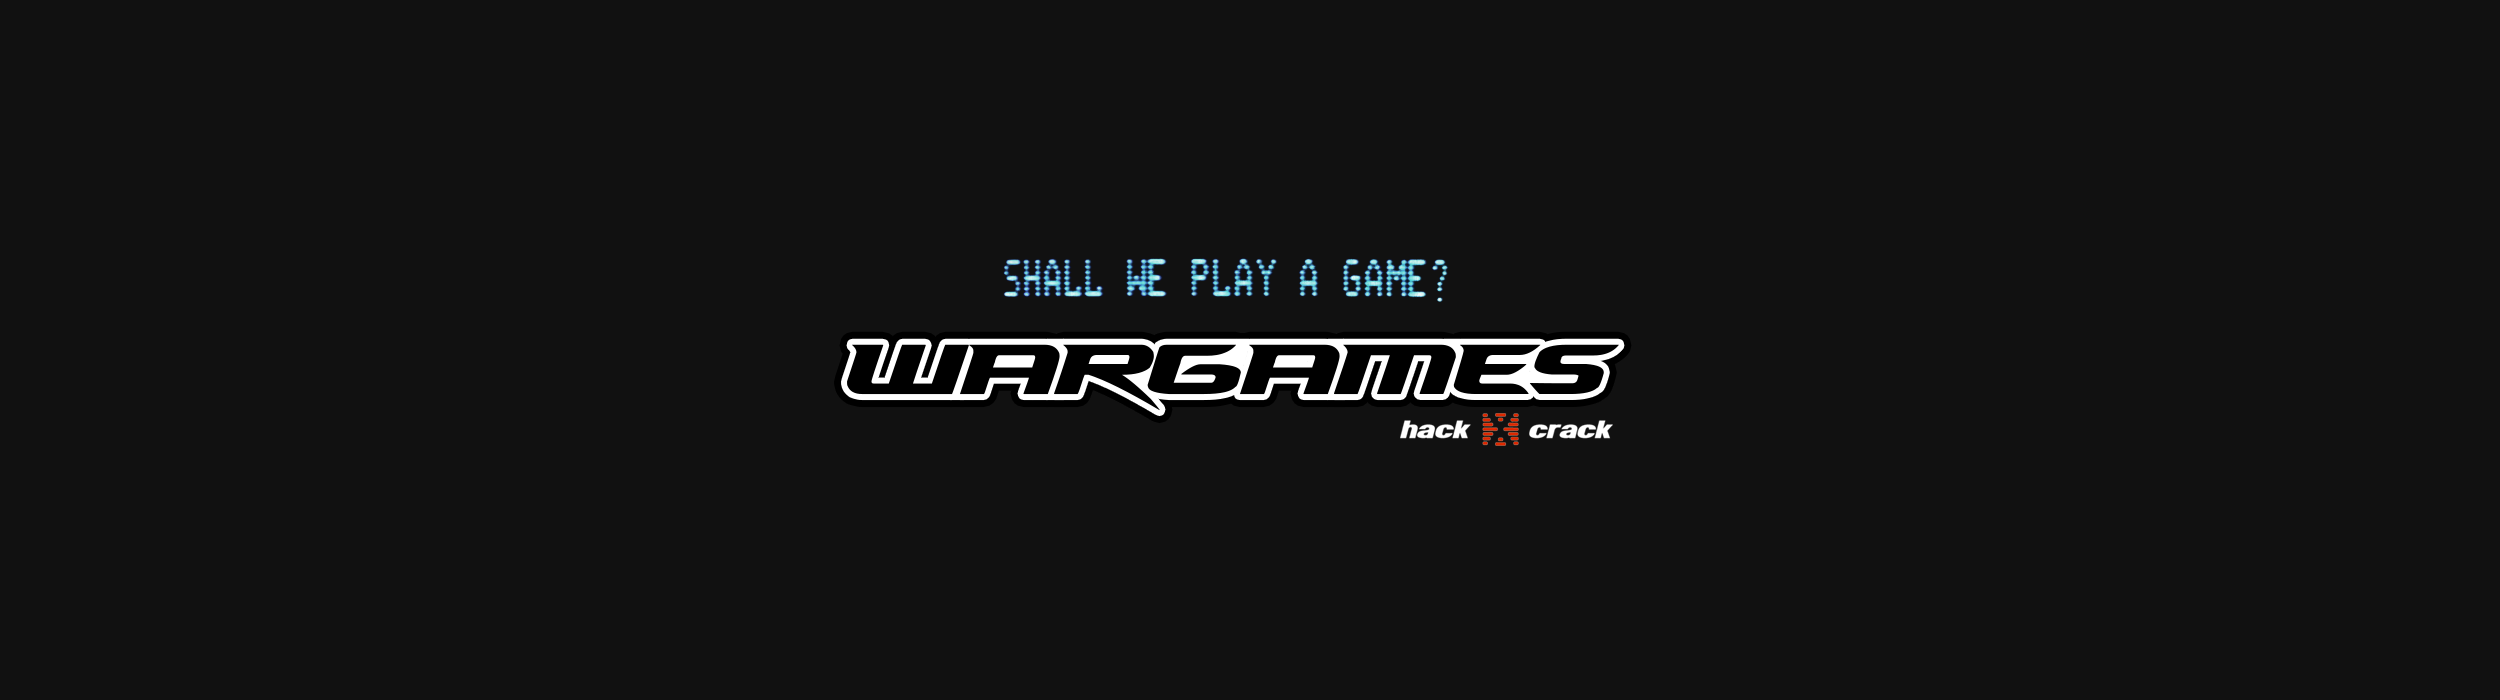 Wargames Hack x Crack